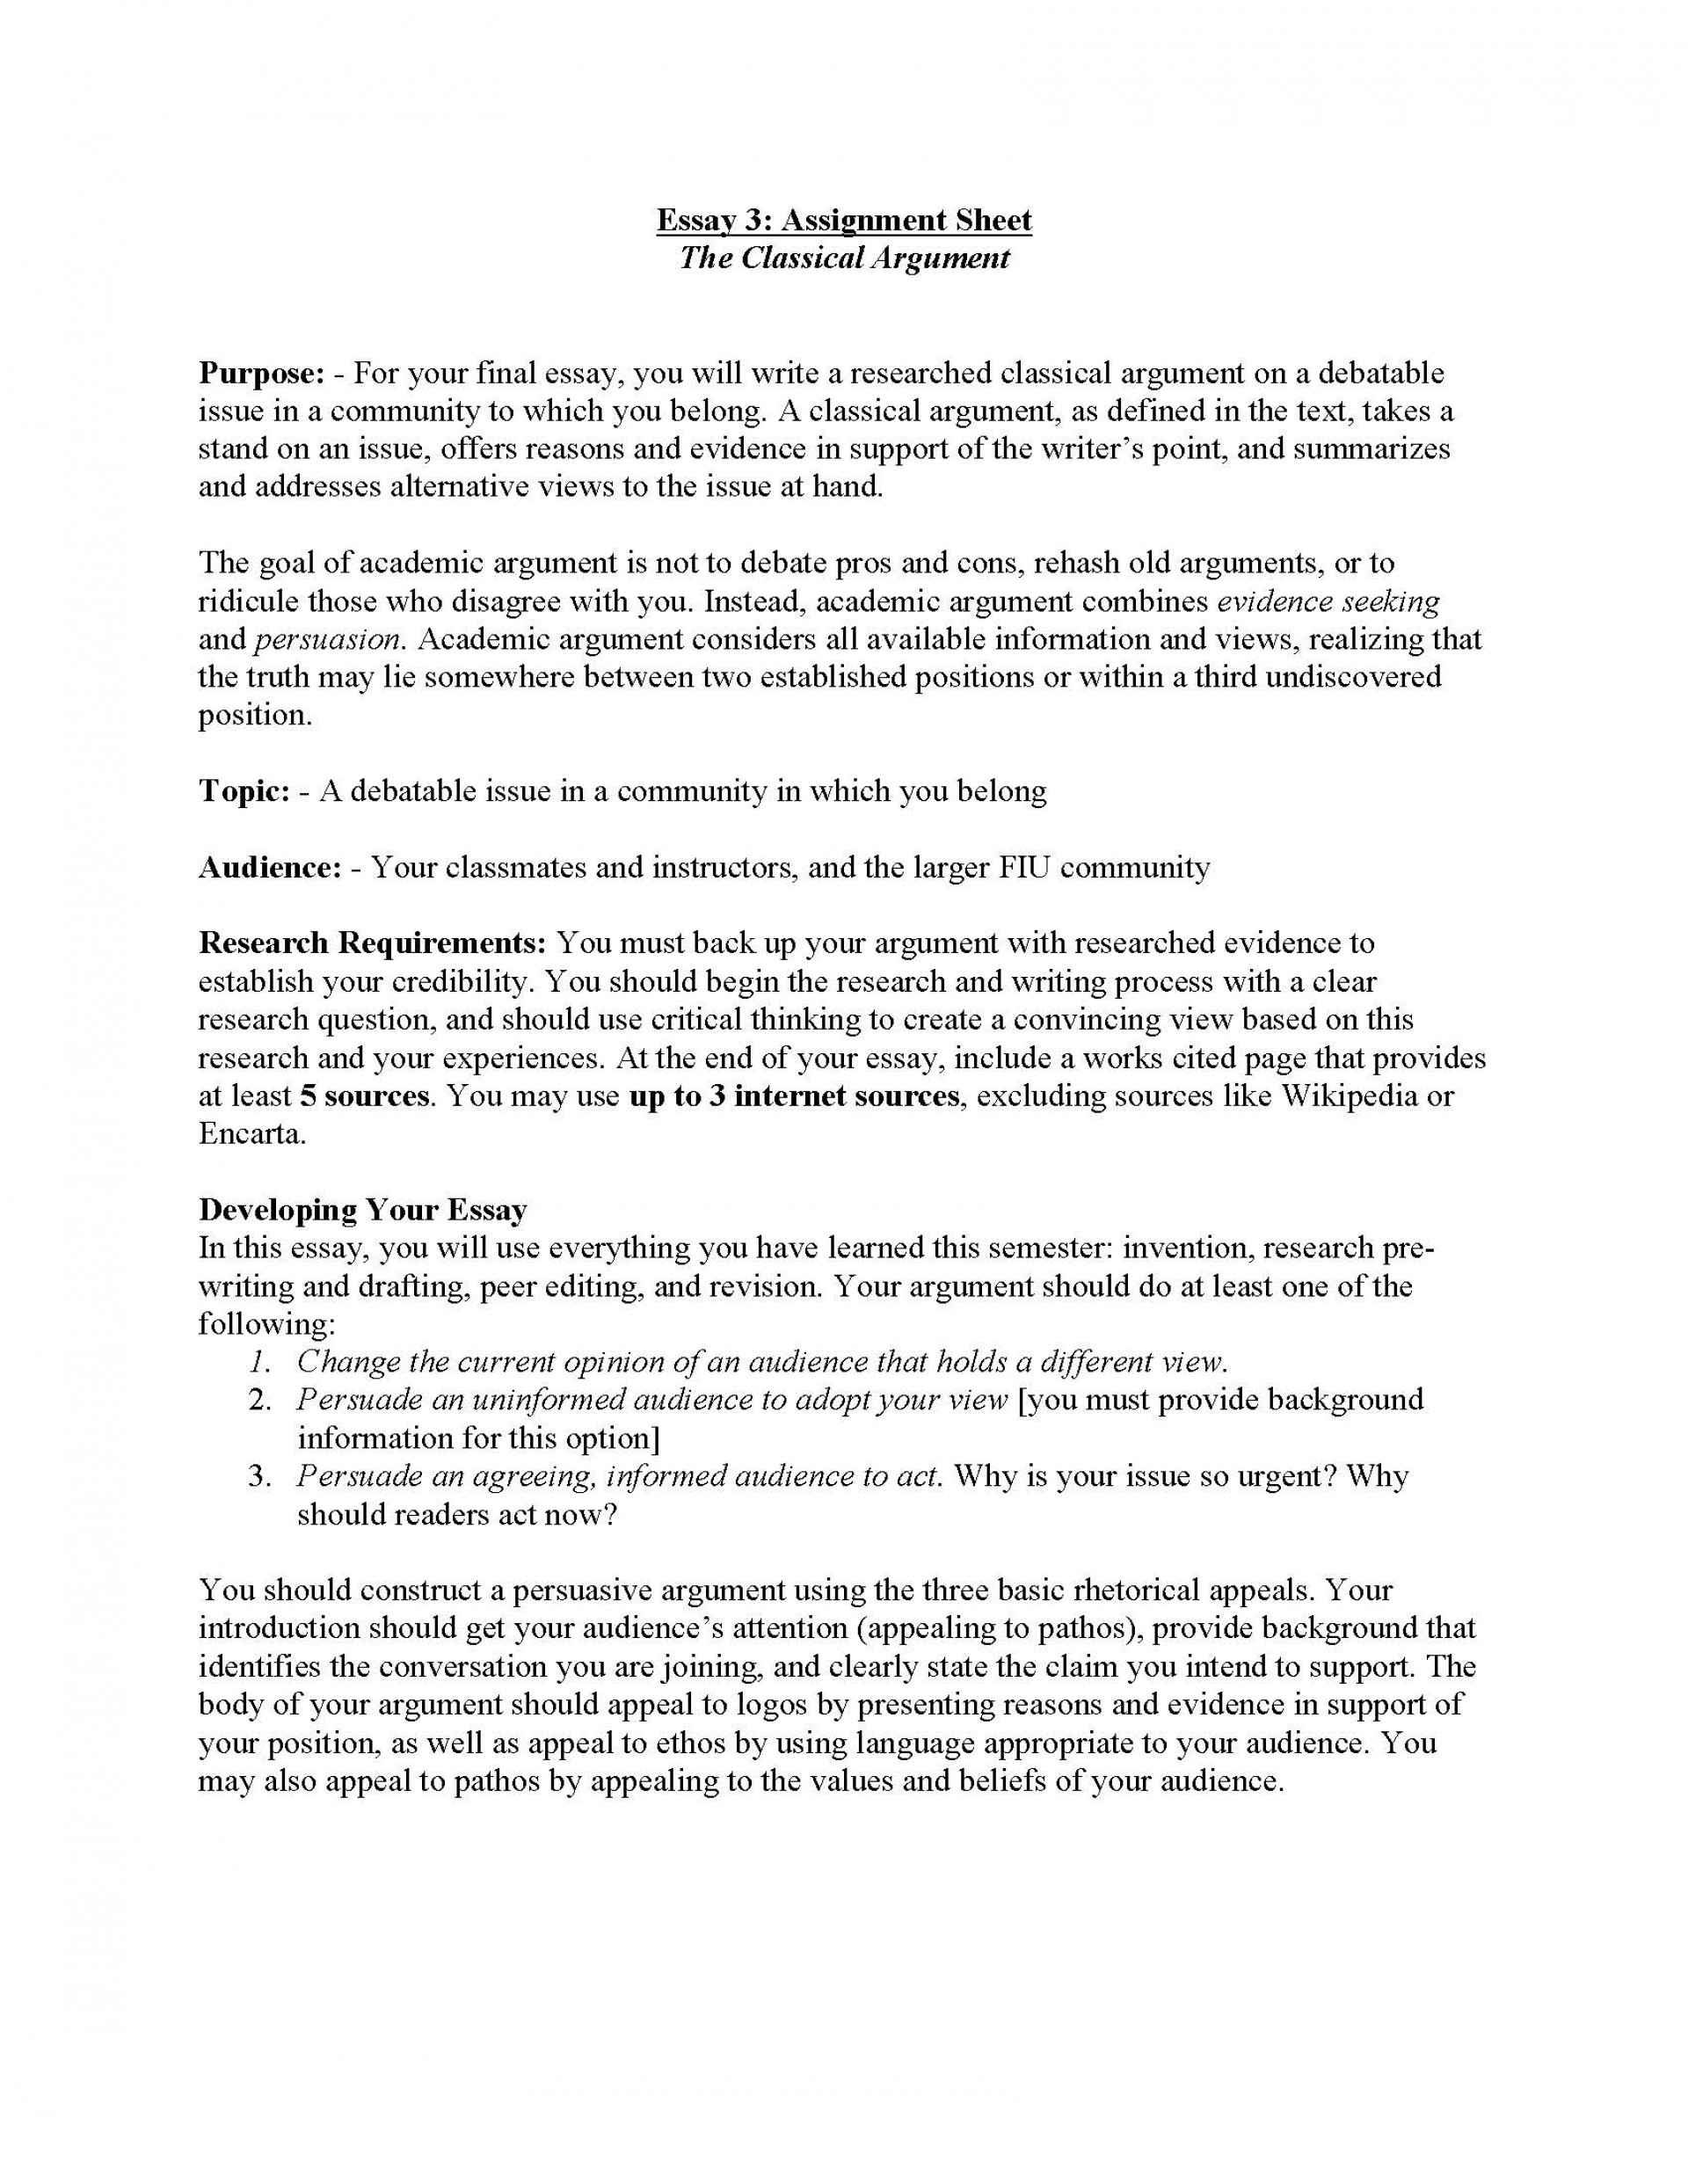 017 Classical Argument Unit Assignment Page 1 Essay Example Best Rogerian Structure Topics 2017 Gun Control 1920